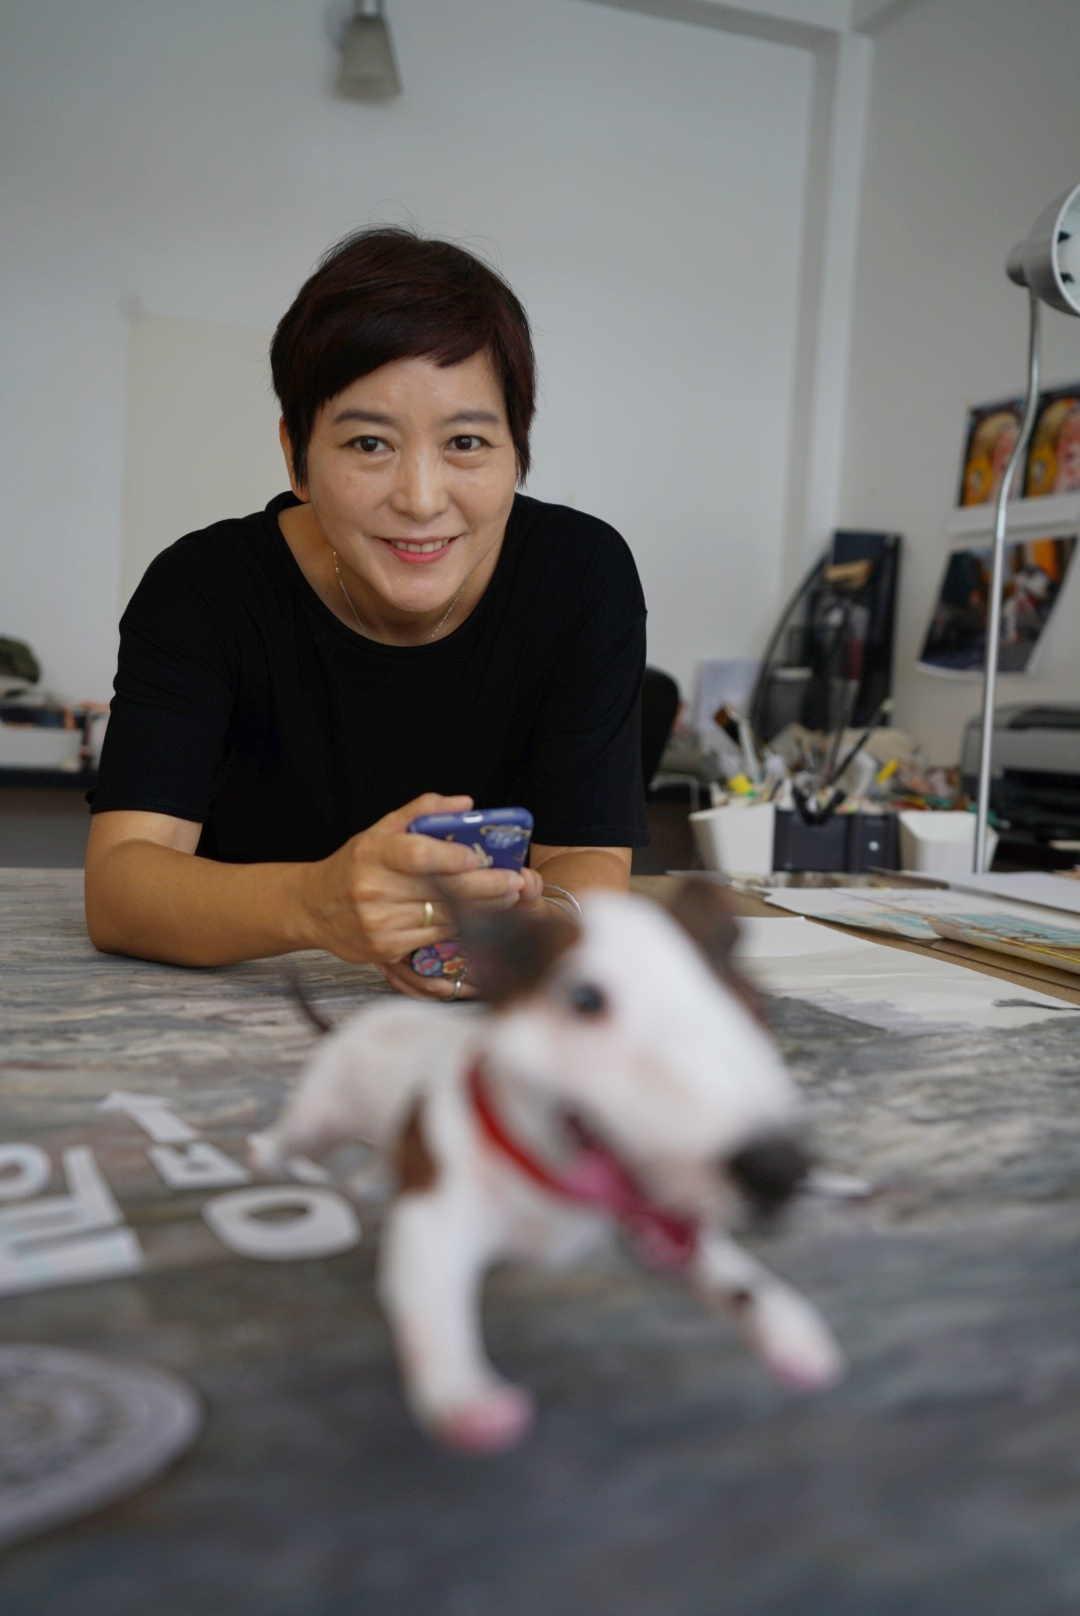 Baek Hee-na, author and illustrator of